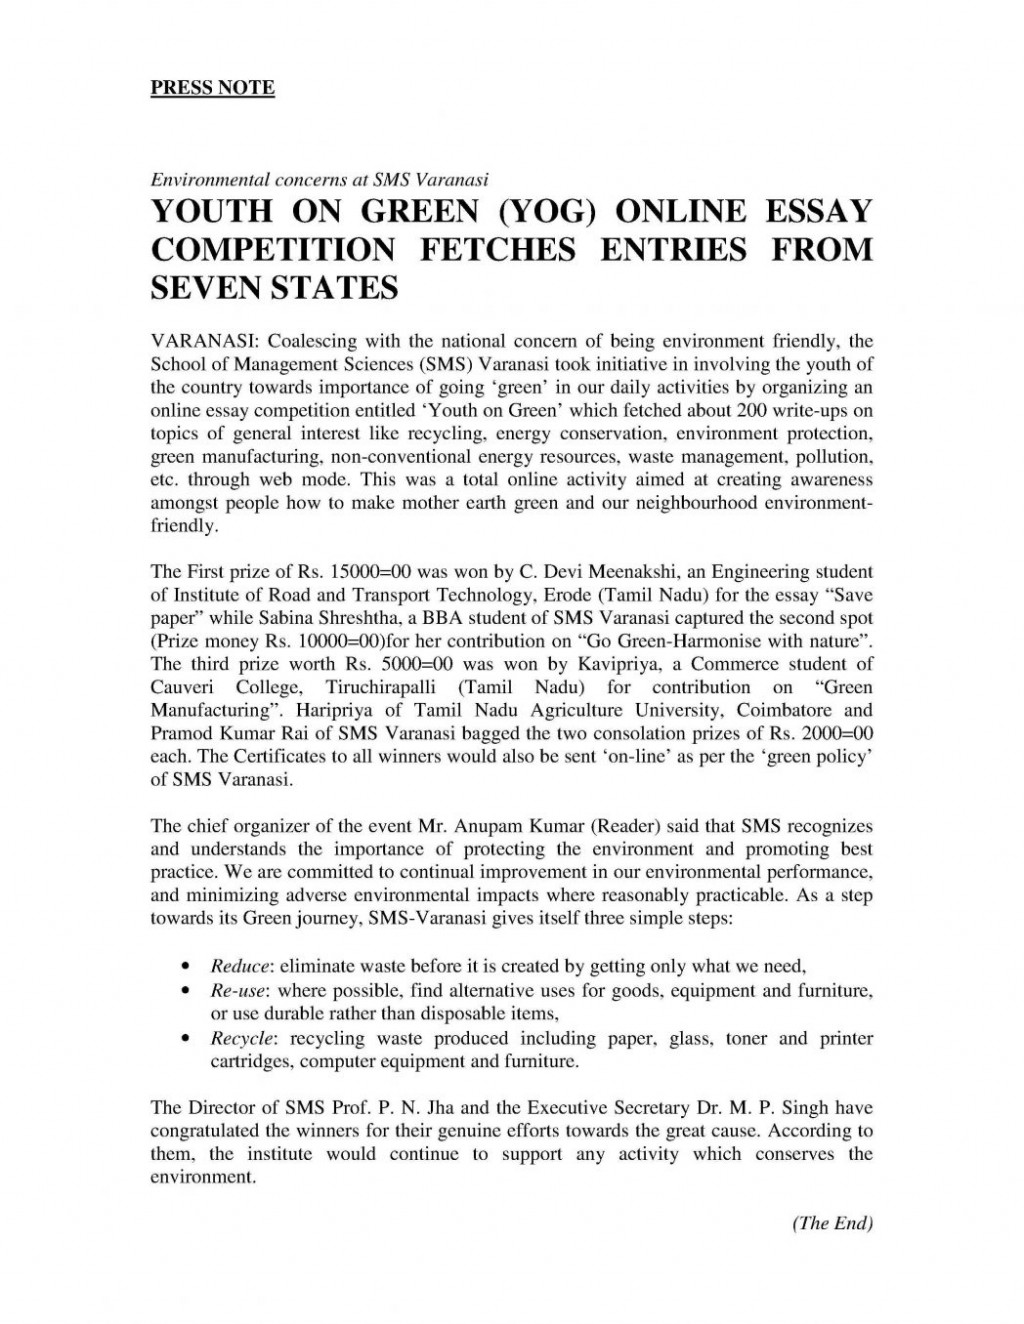 008 Healthy Food Essay Essays Eating Organizations Online Yog Press Re Block 1048x1356 Best For Grade 3 Habits In Hindi Wikipedia Large